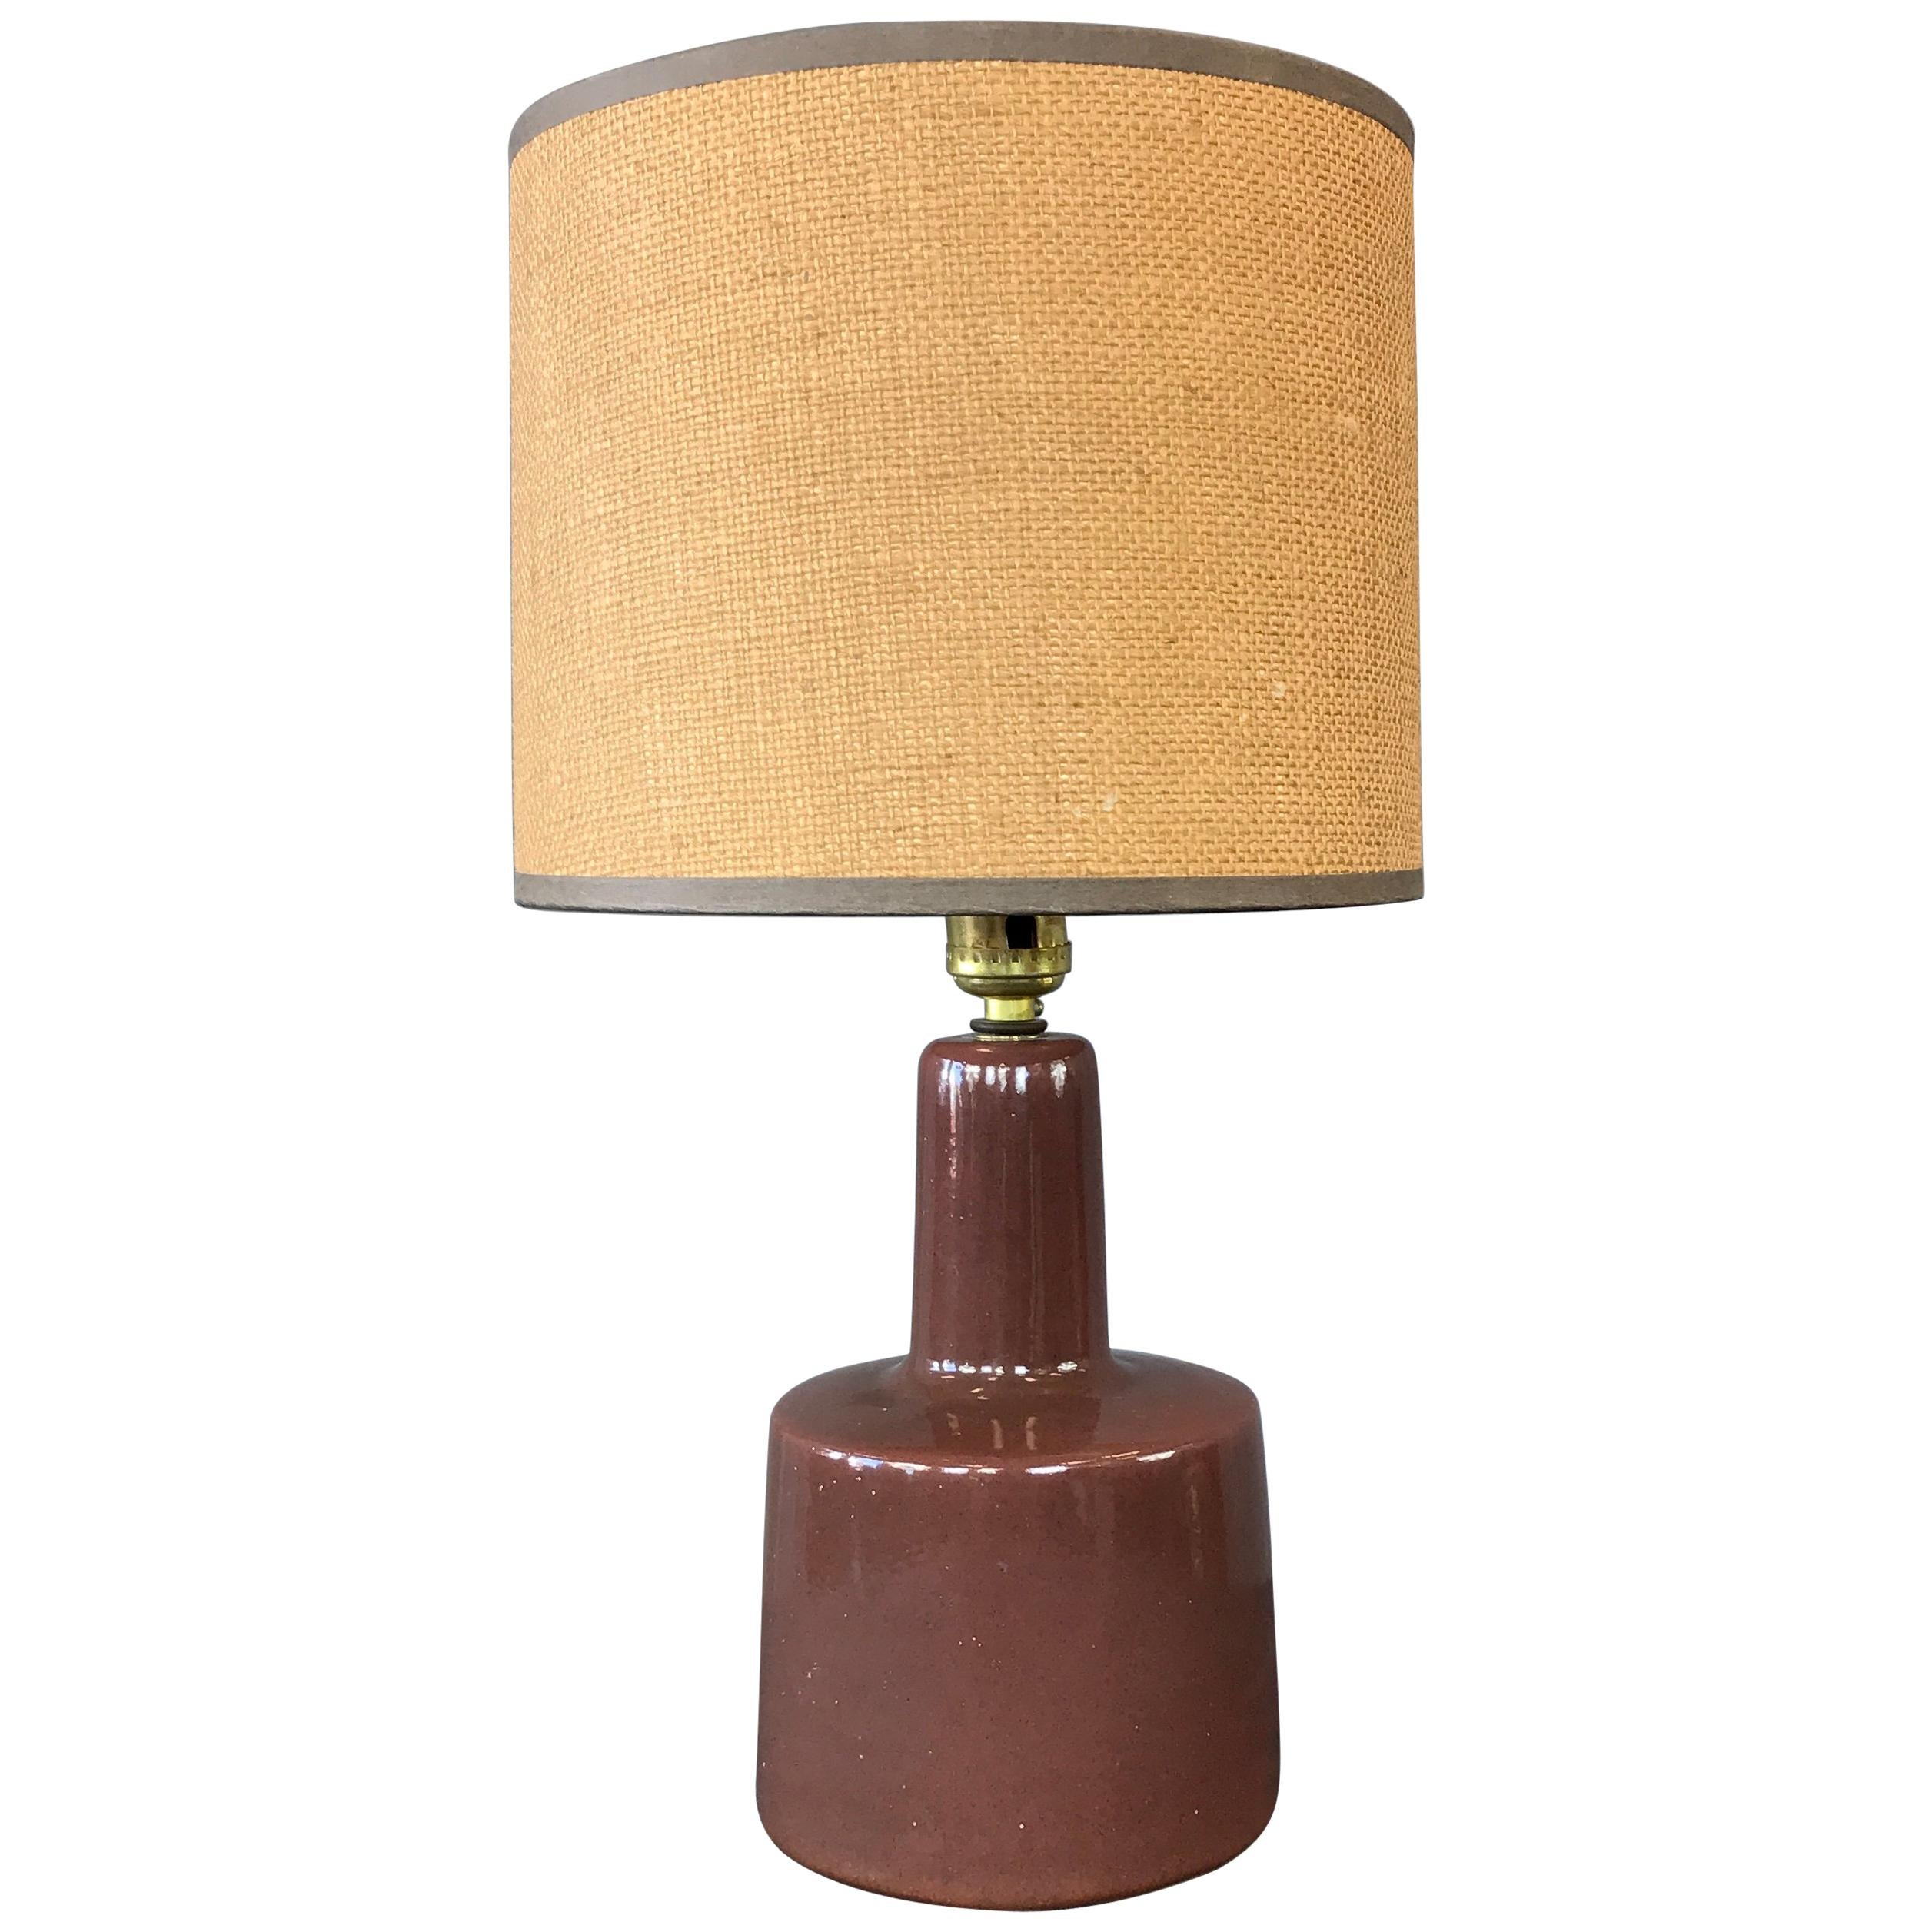 Chocolate Color Gordon and Jane Martz Table Lamp for Marshall Studios